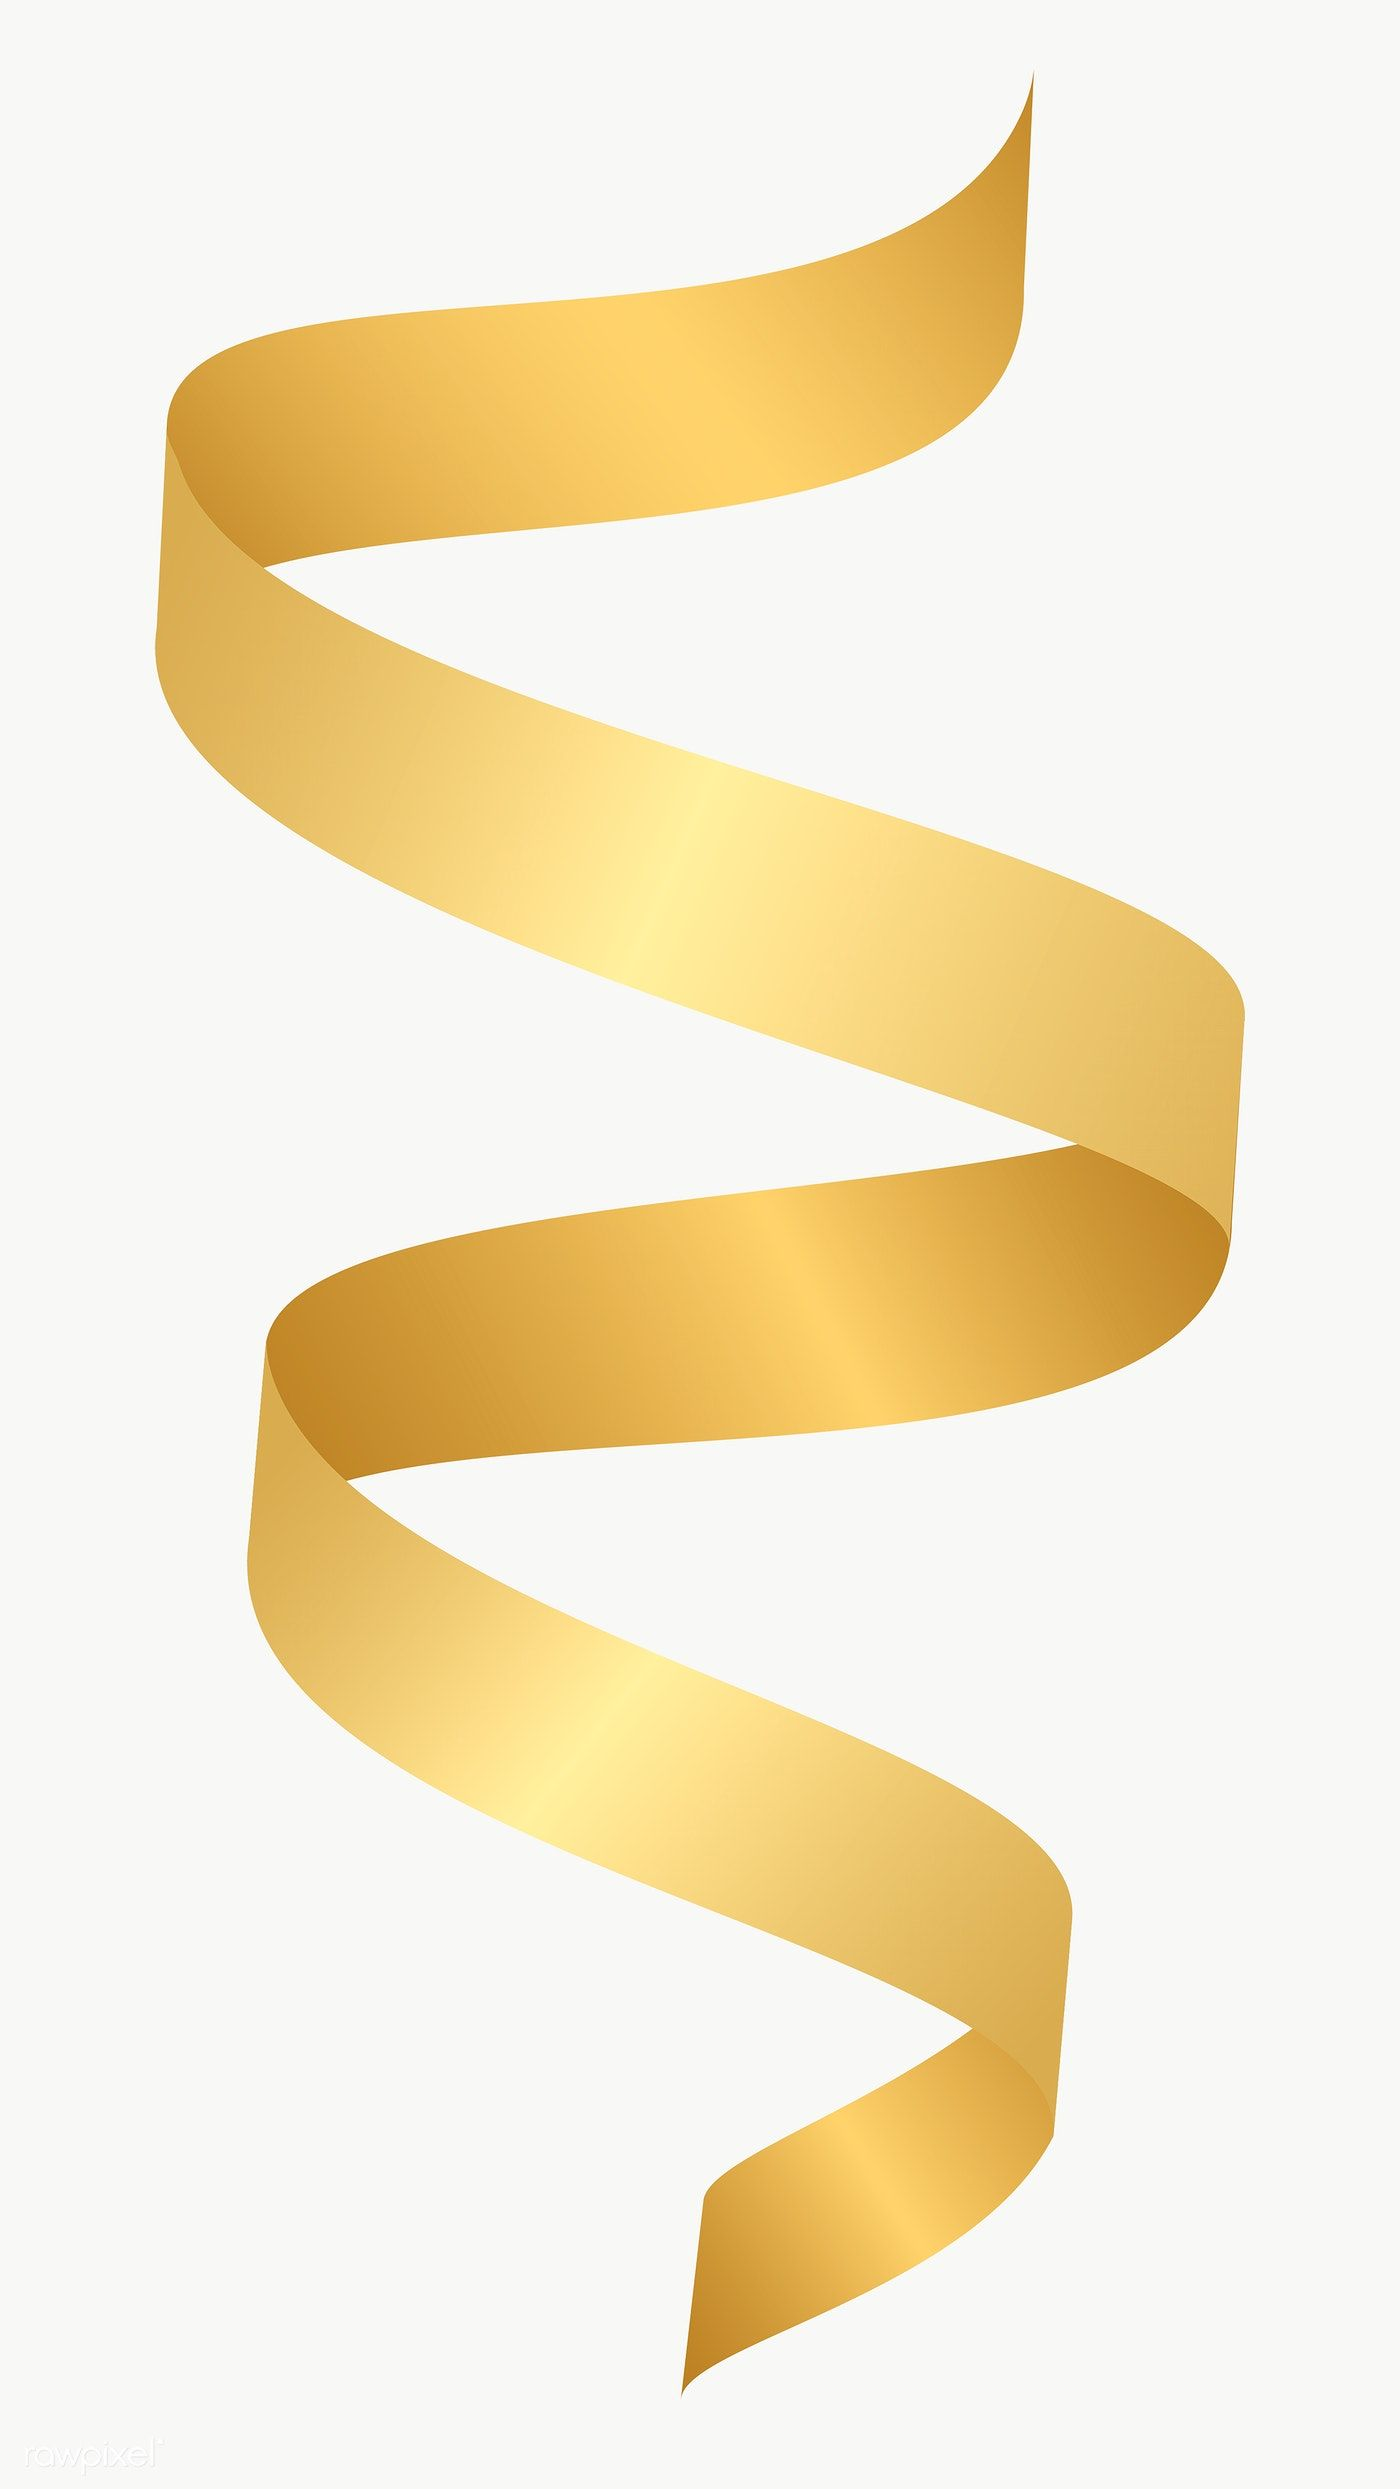 Gold Ribbon Element Transparent Png Free Image By Rawpixel Com Kappy Kappy Ribbon Png Gold Ribbons Stock Images Free